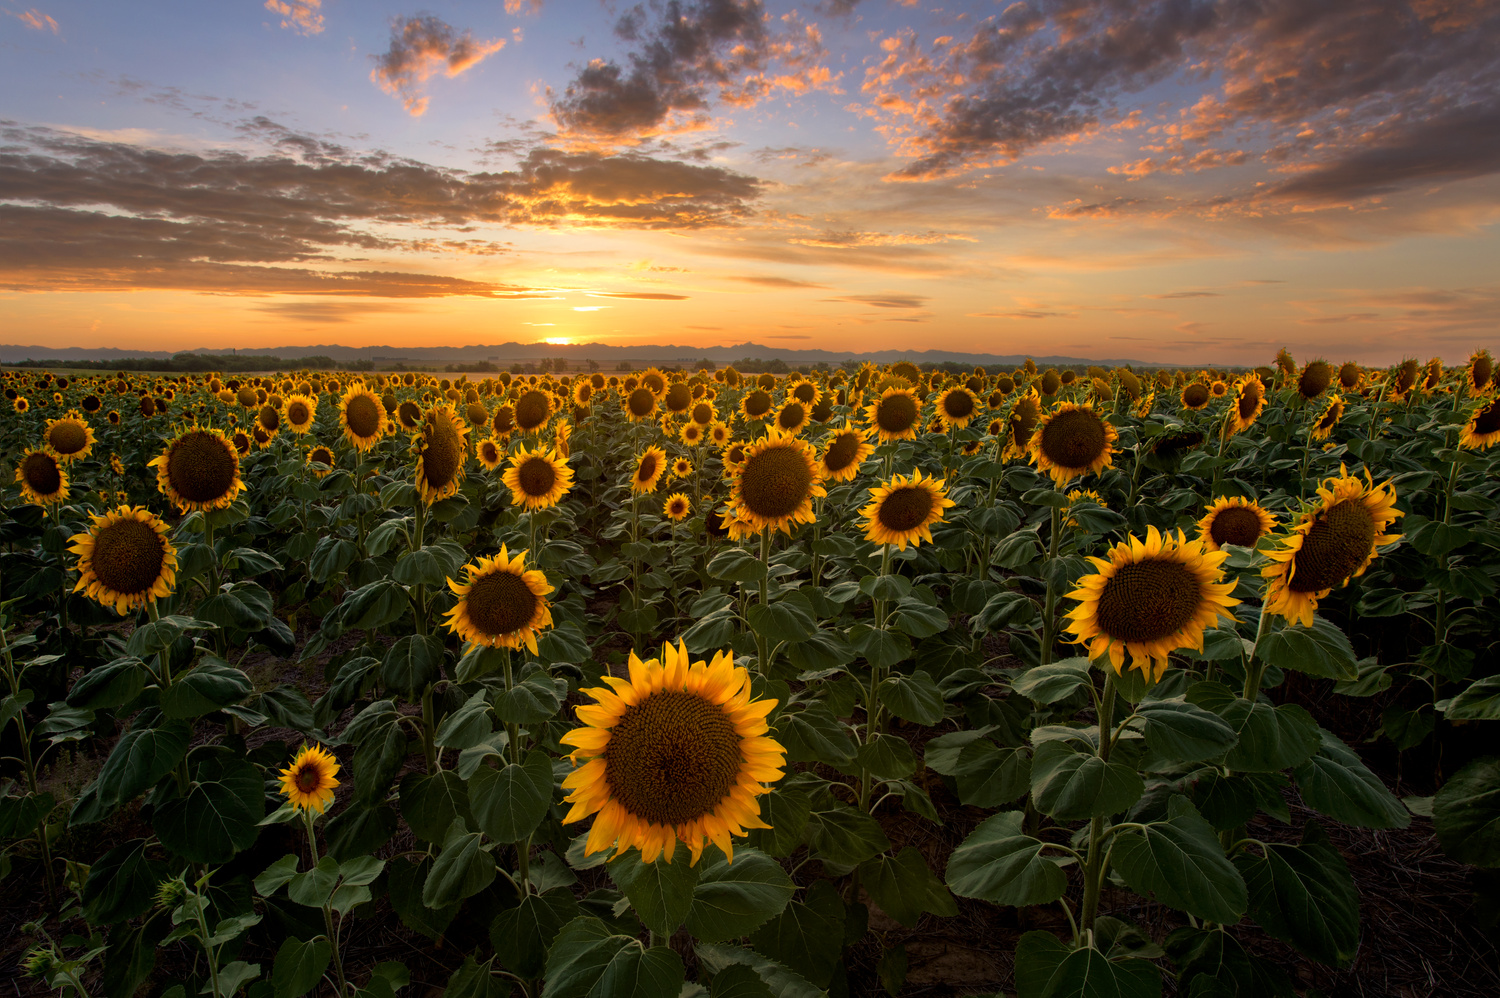 Summer Sunset at the Sunflower Field by Nick Souvall